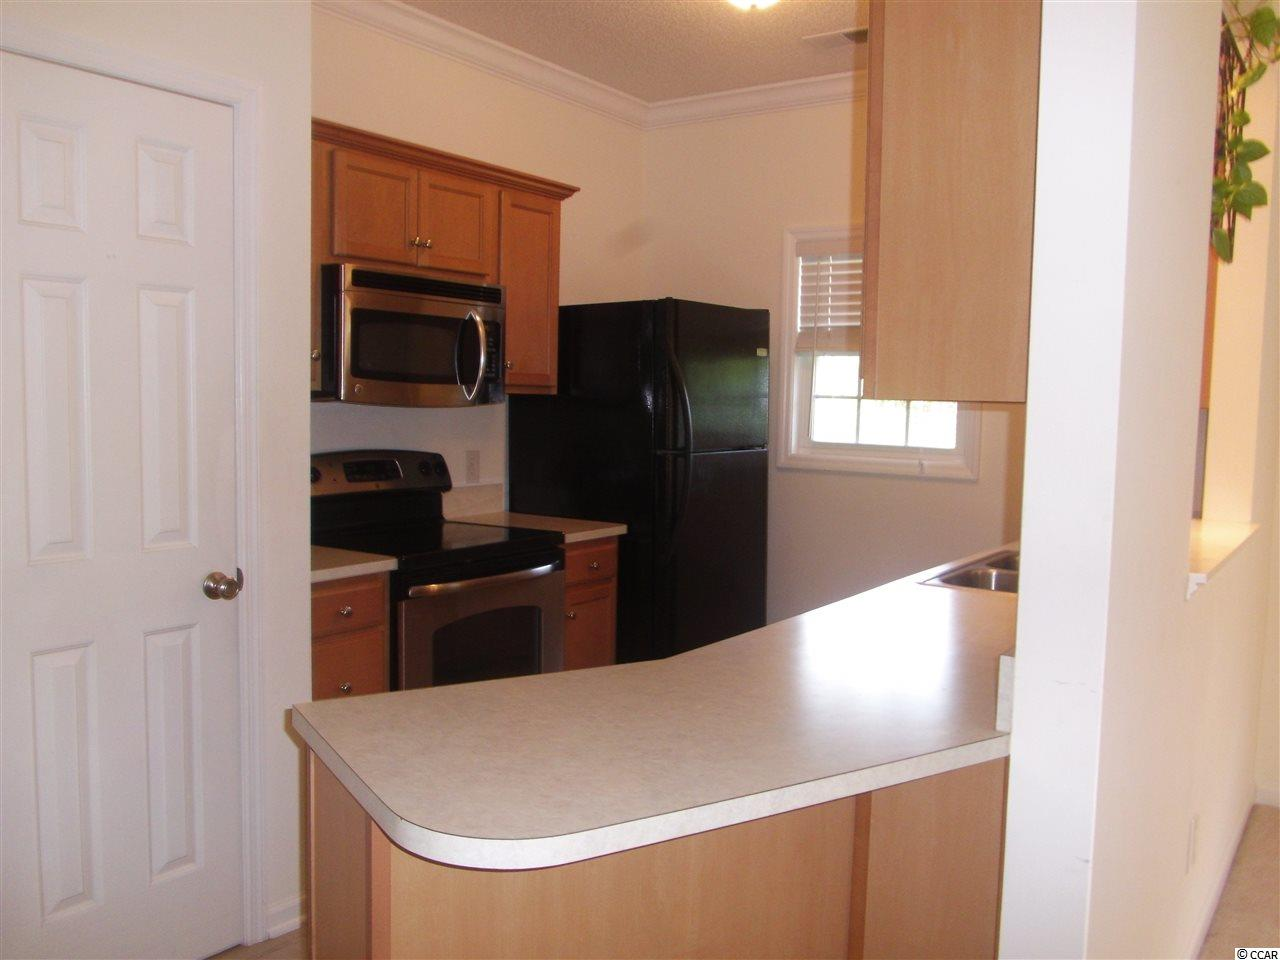 Contact your Realtor for this 3 bedroom condo for sale at  Maddington II